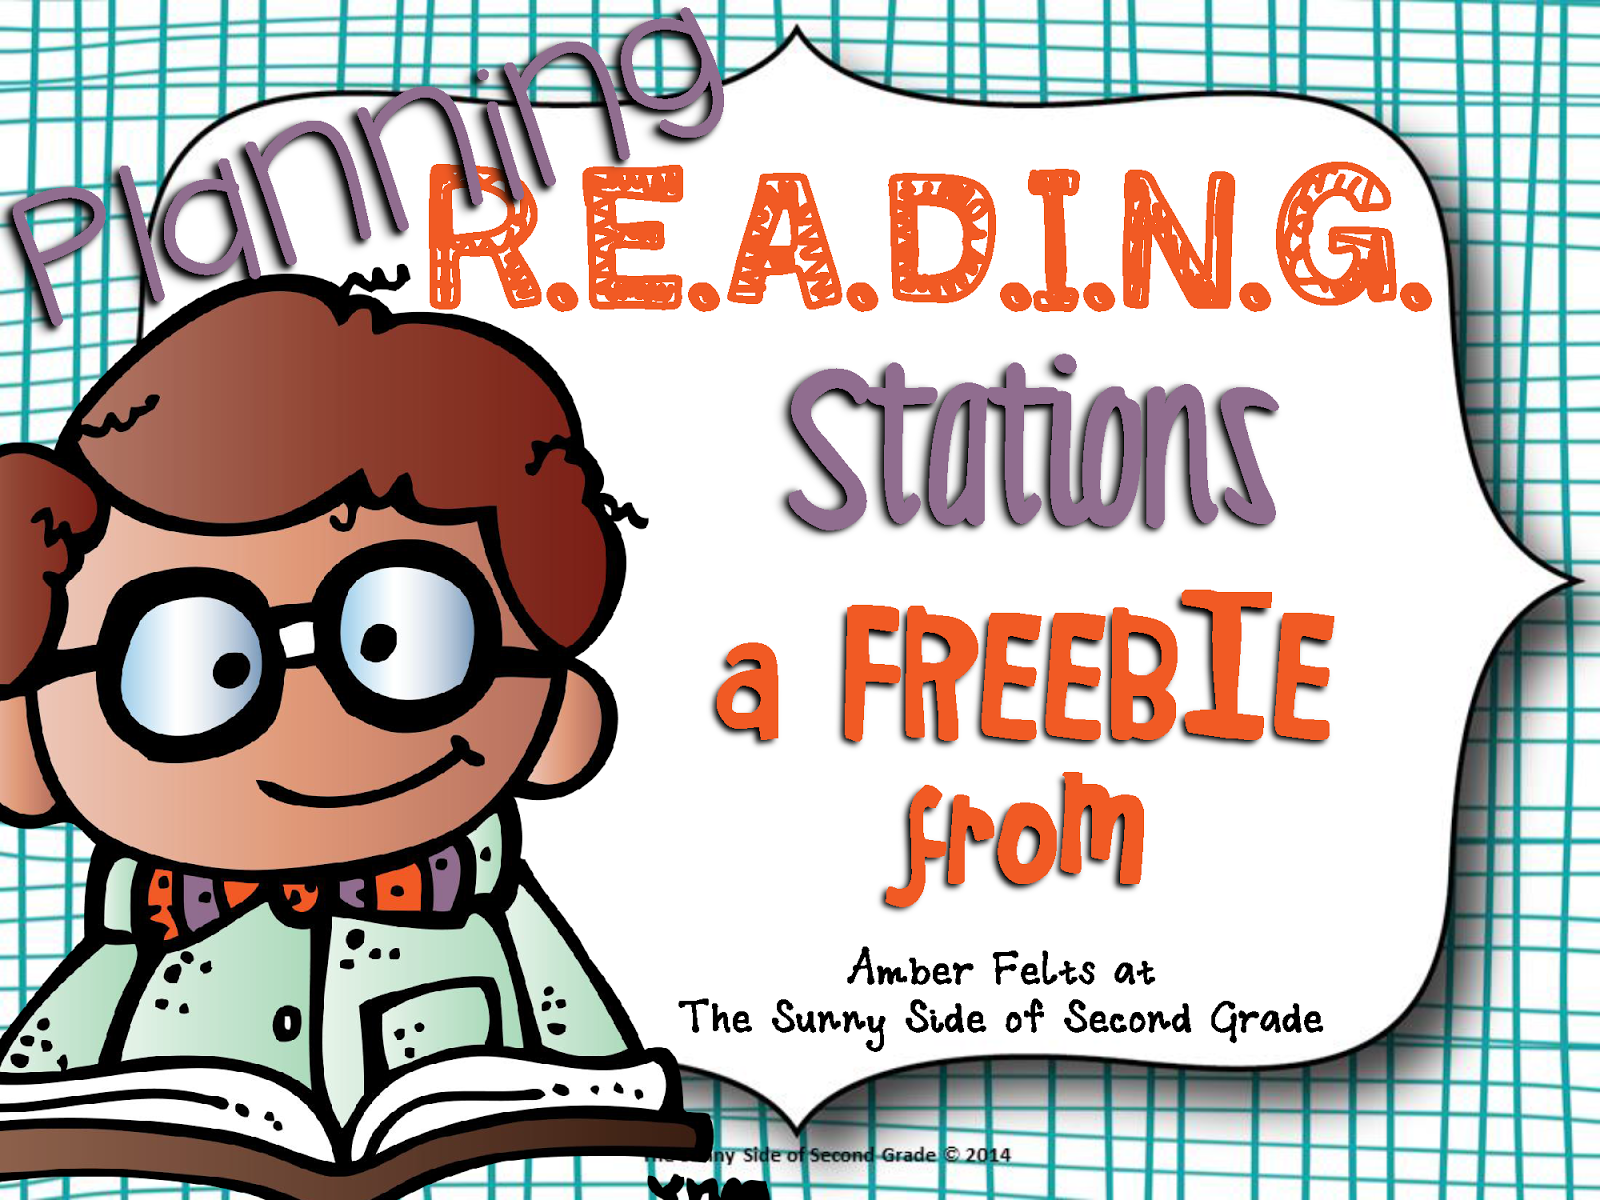 http://www.teacherspayteachers.com/Product/Planning-READING-Stations-FREEBIE-1596492